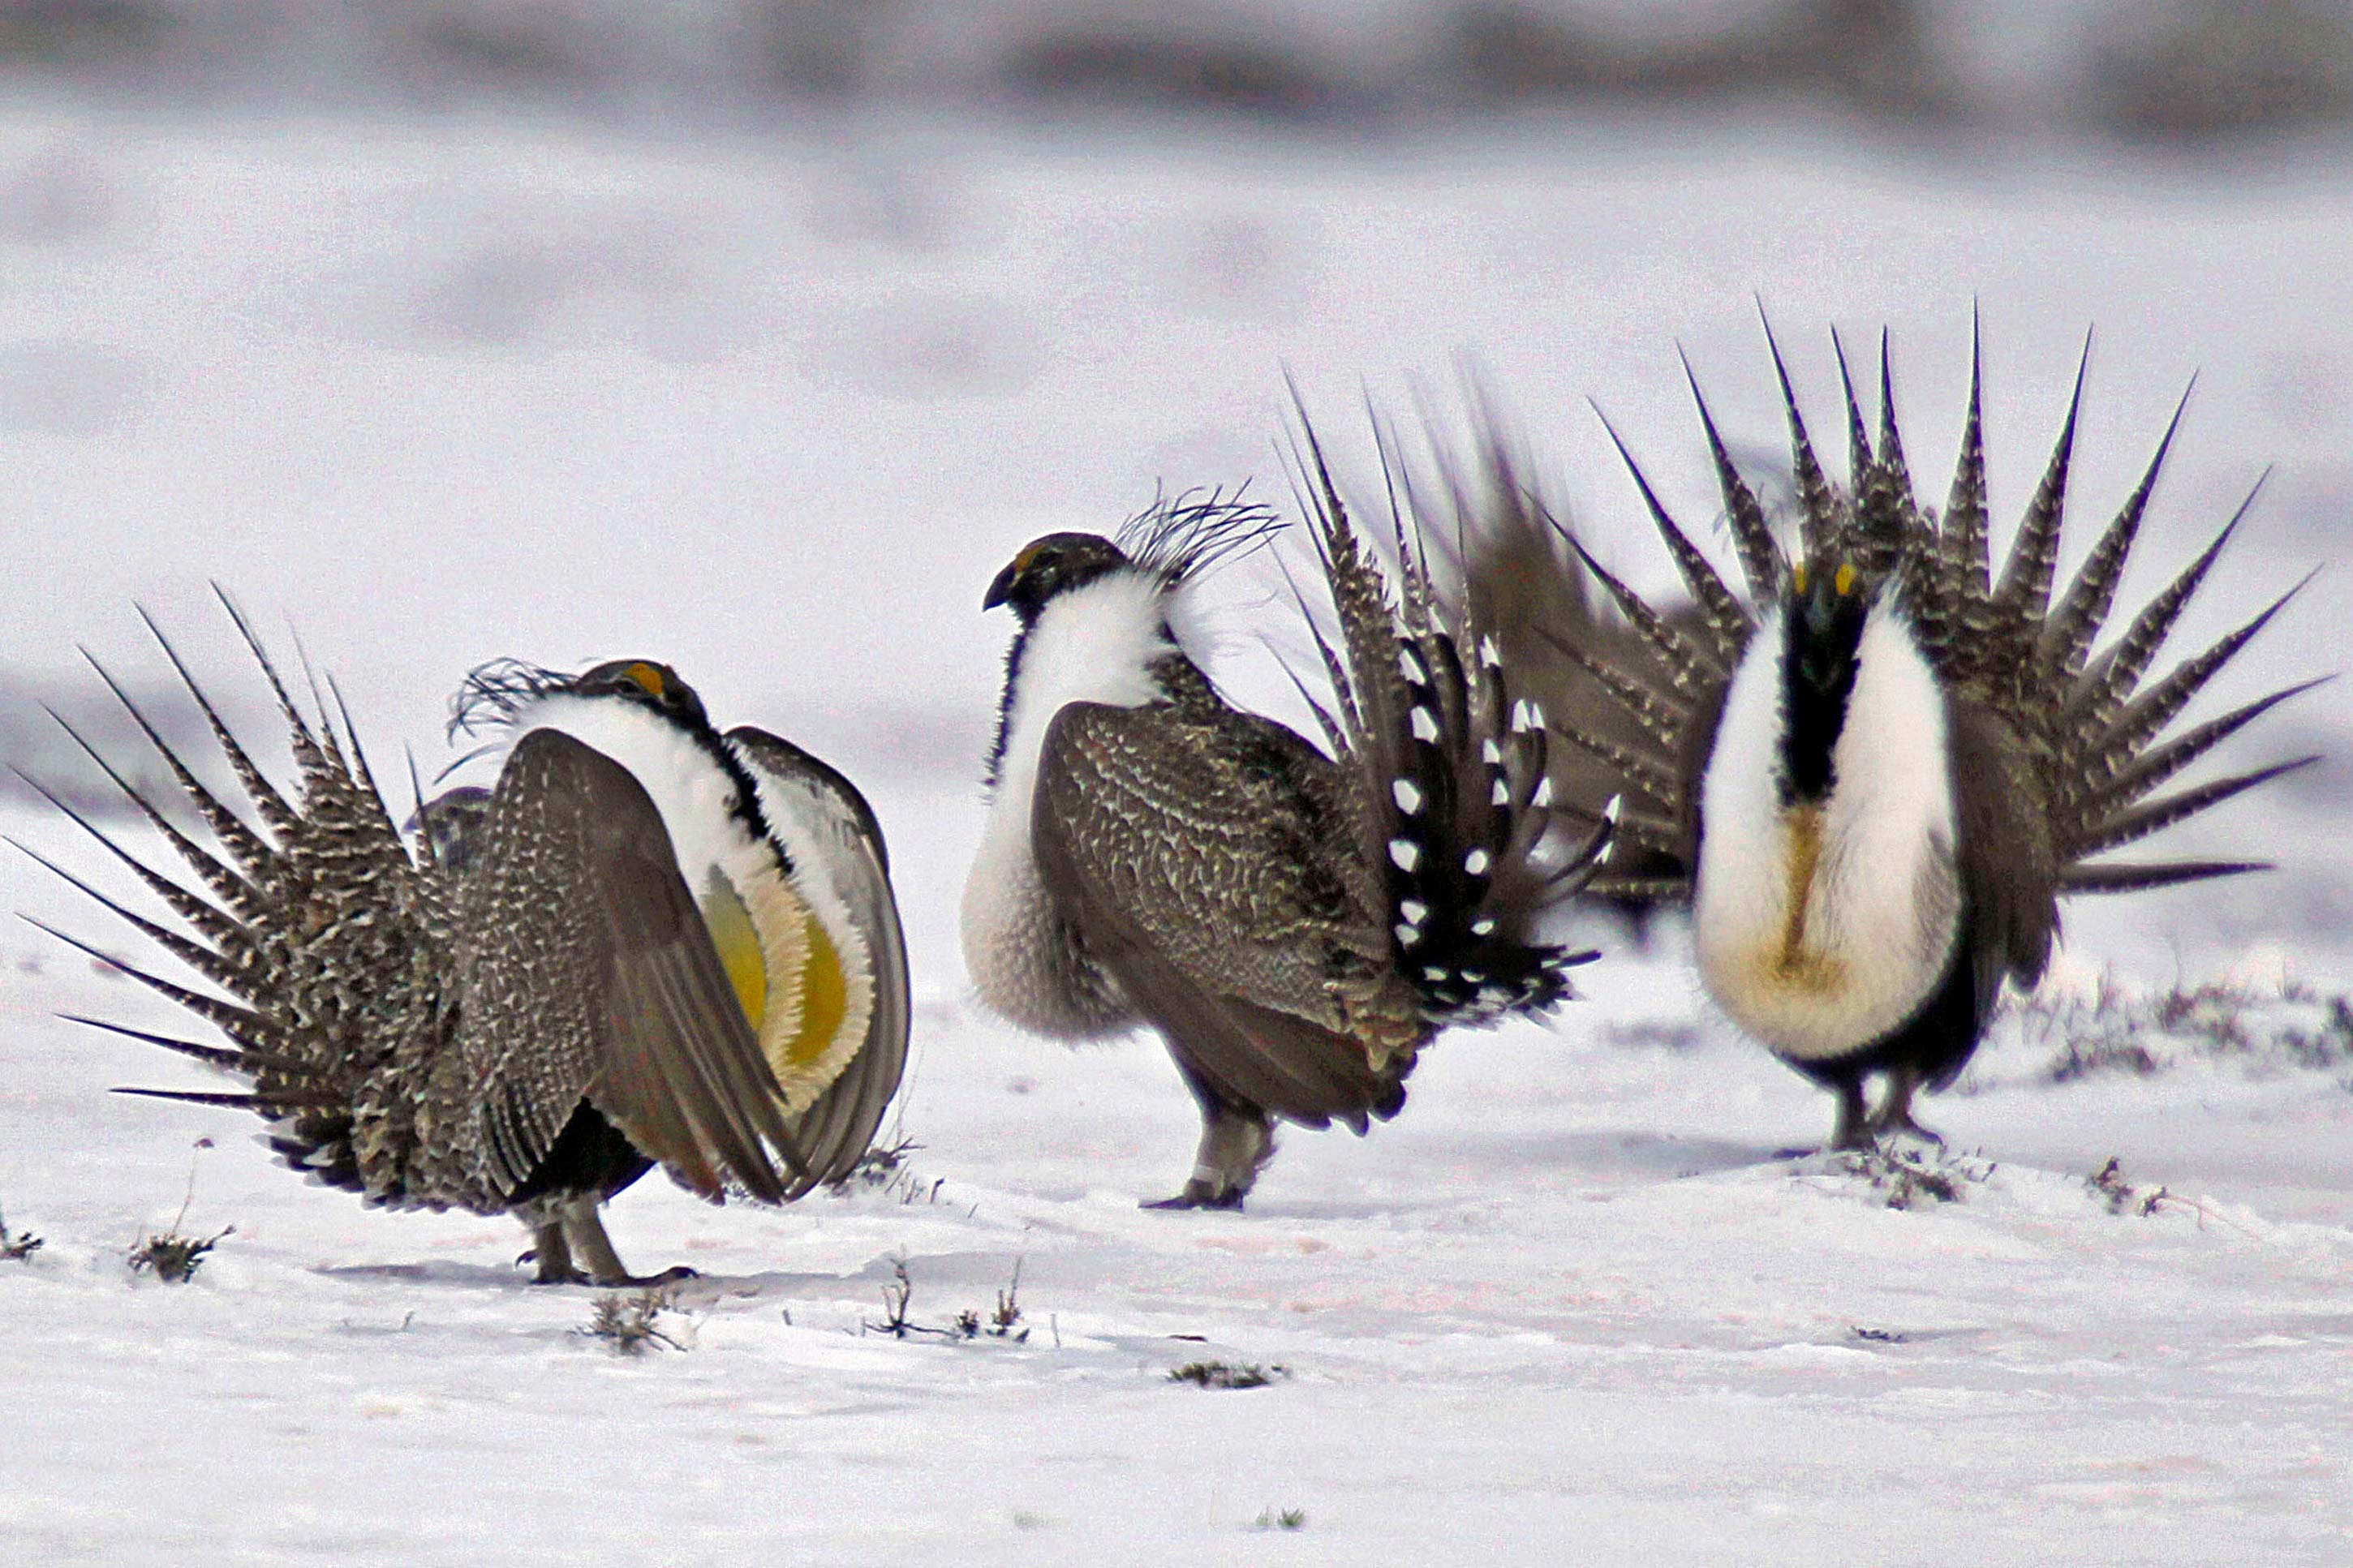 "<p>Male greater sage grouse perform mating rituals for a female grouse, not pictured, on a lake outside Walden, Colo., i<span style=""color: rgb(64, 69, 64);"">n April of 2013.</span></p>"